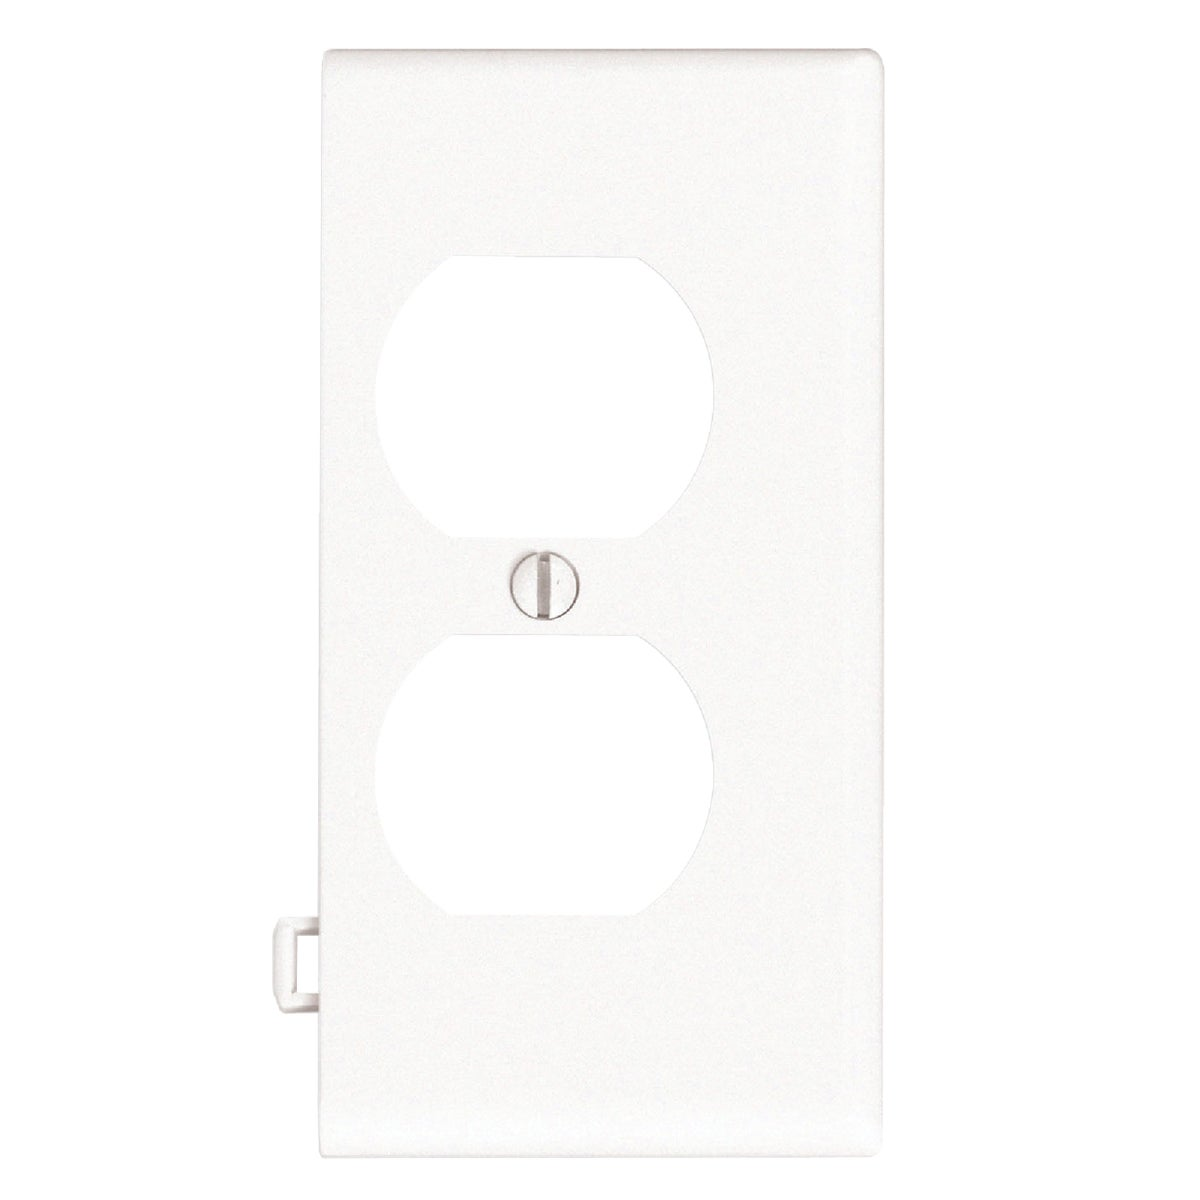 WHT DUPLEX END PLATE - 905-PSE8-W by Leviton Mfg Co